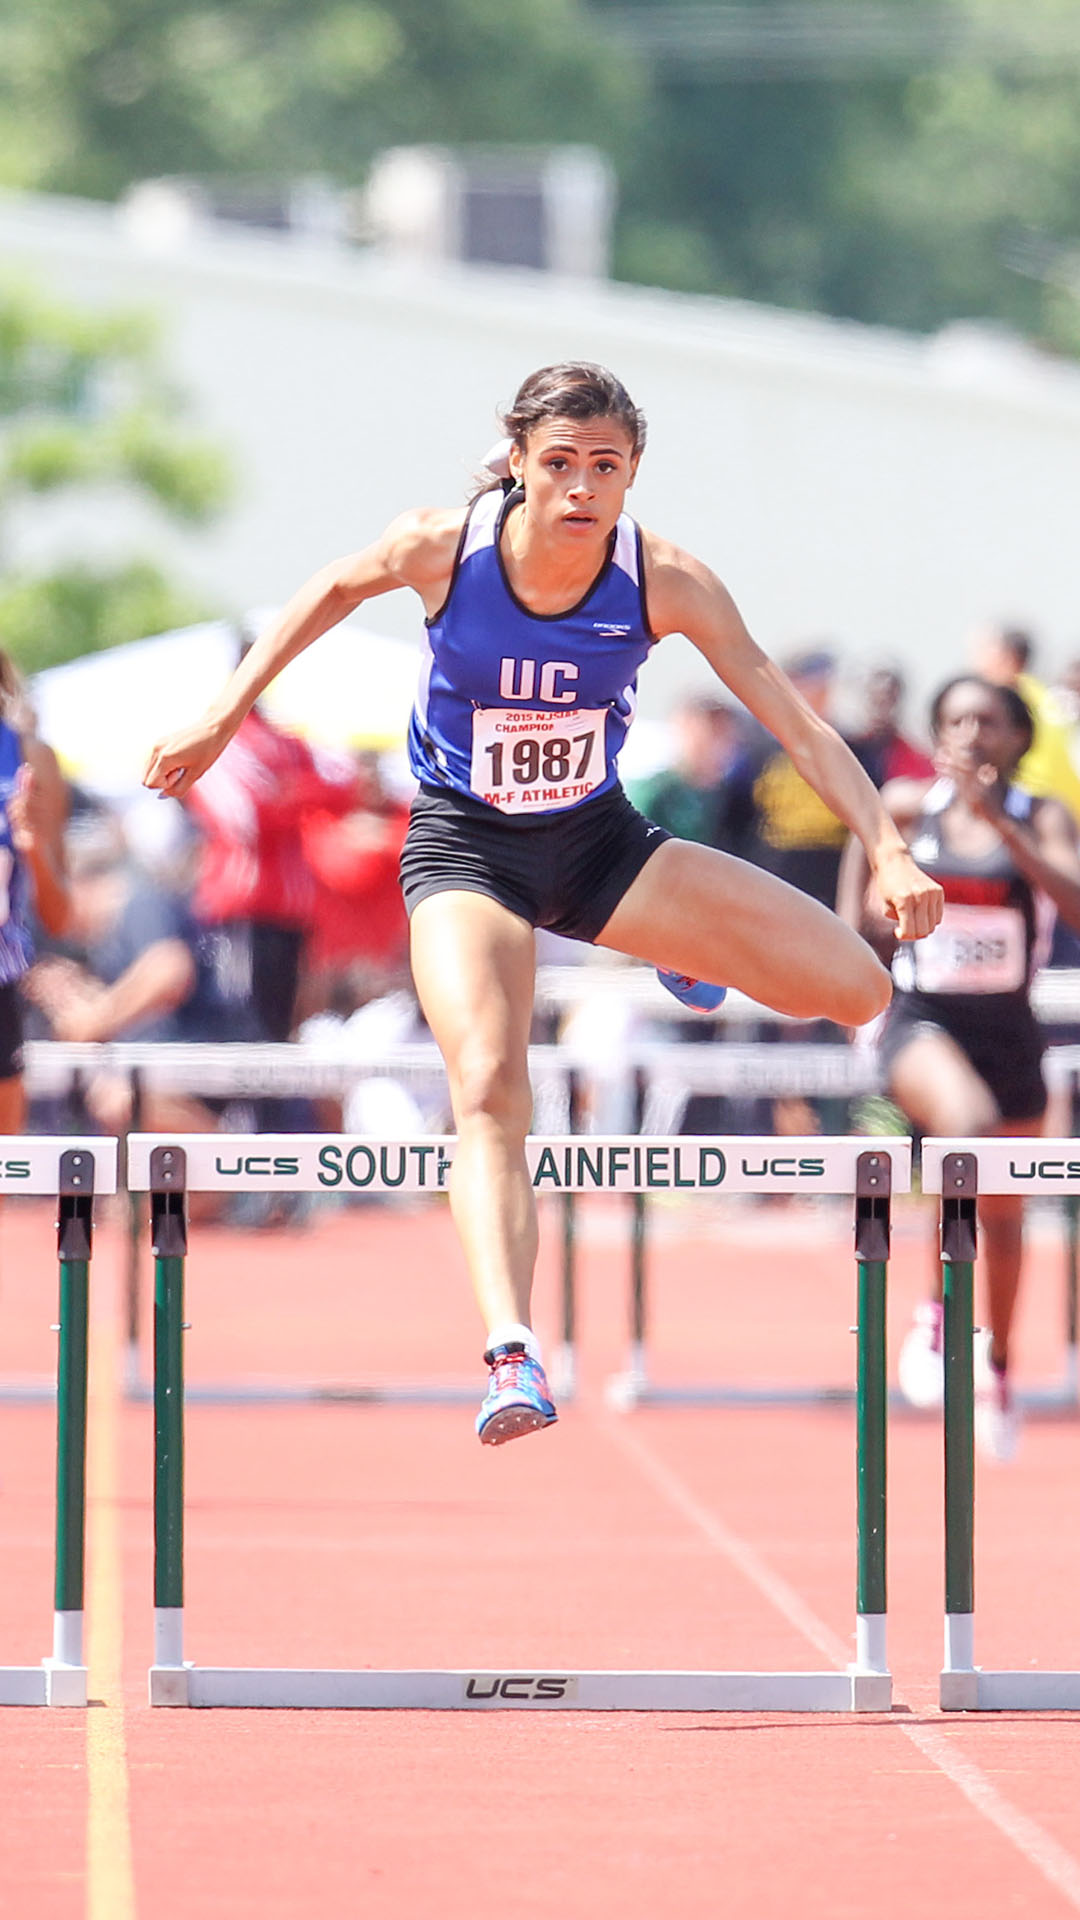 Sydney McLaughlin didn't lose a race in the final three seasons of her high school career at Union Catholic.